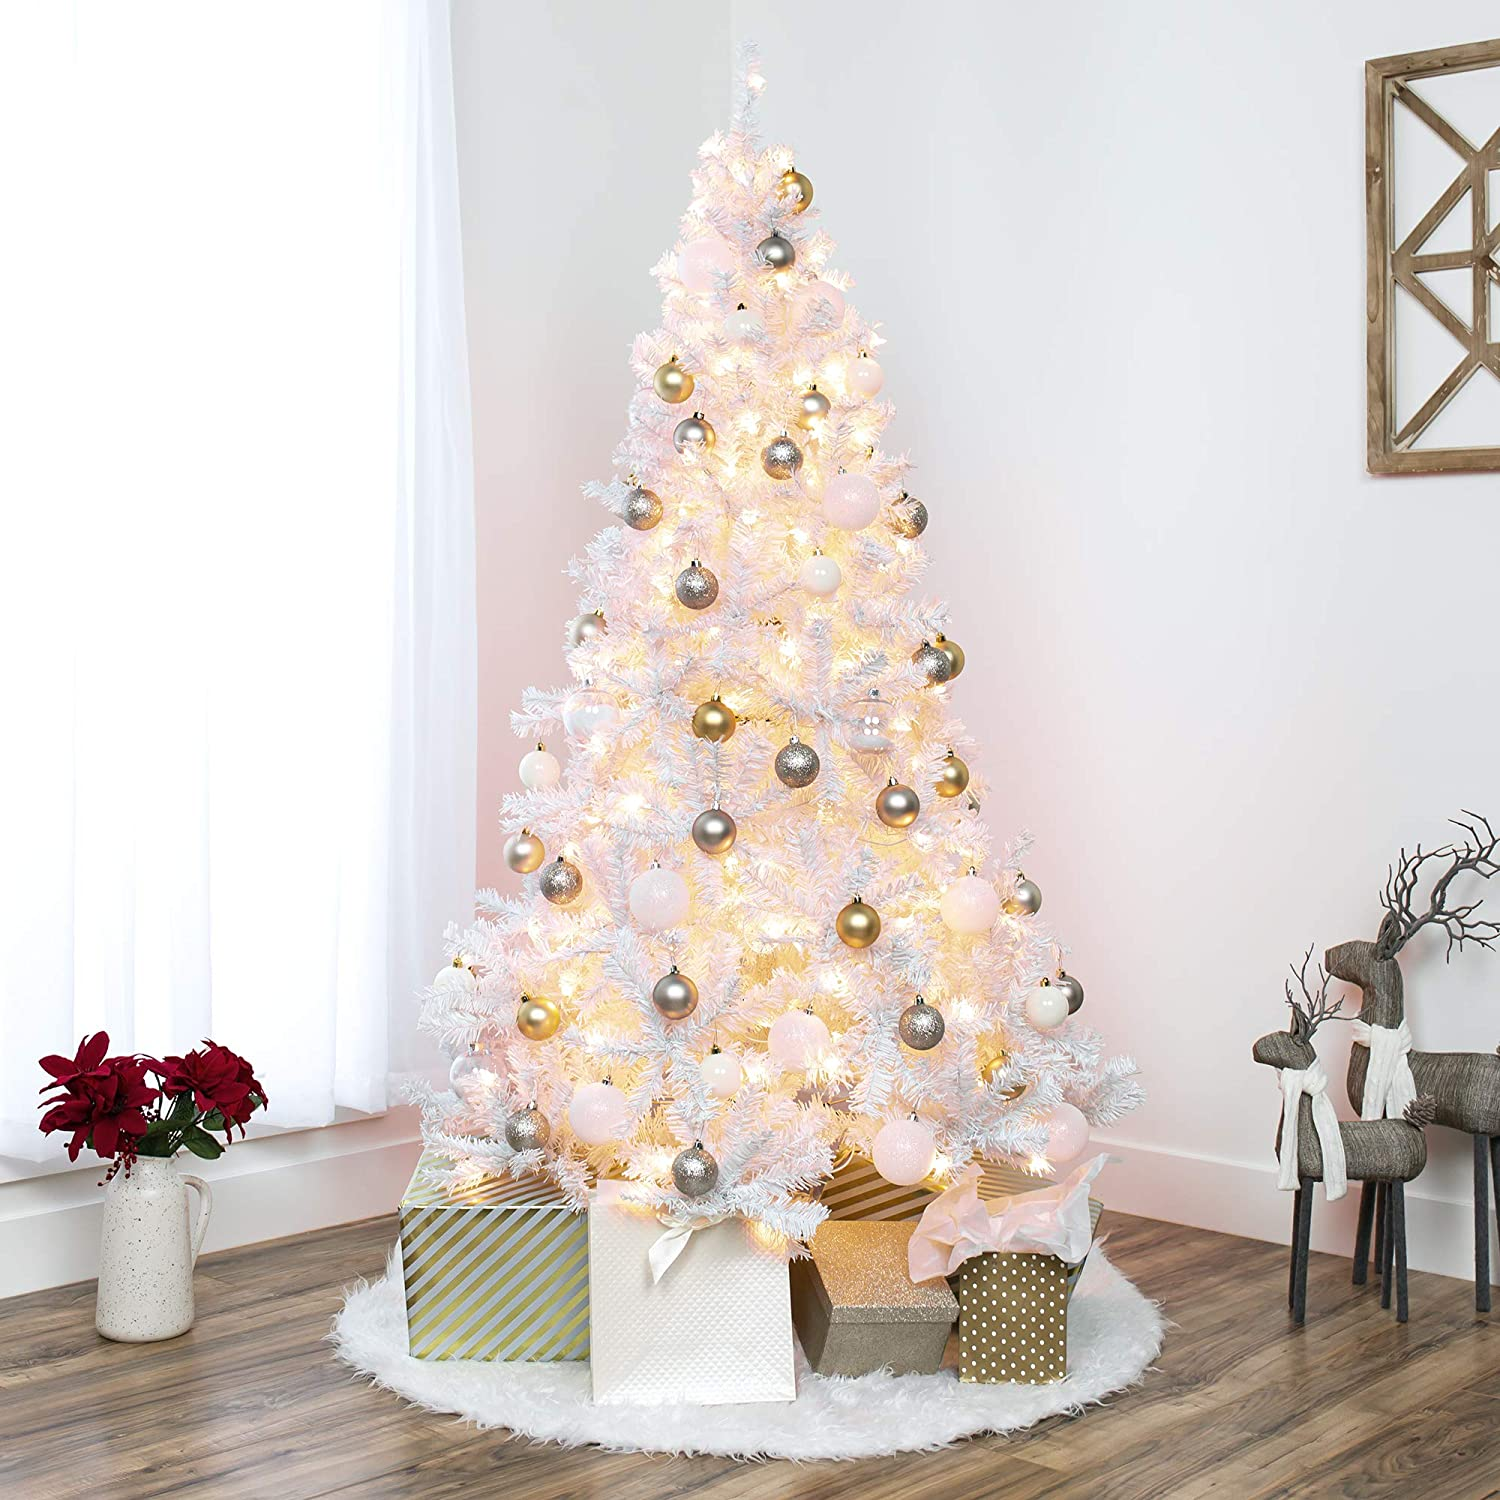 Amazon Com Best Choice Products 6ft Pre Lit Hinged Artificial Christmas Pine Tree Holiday Decoration W 250 Warm White Lights Metal Stand 1 000 Tips Easy Assembly White Home Kitchen